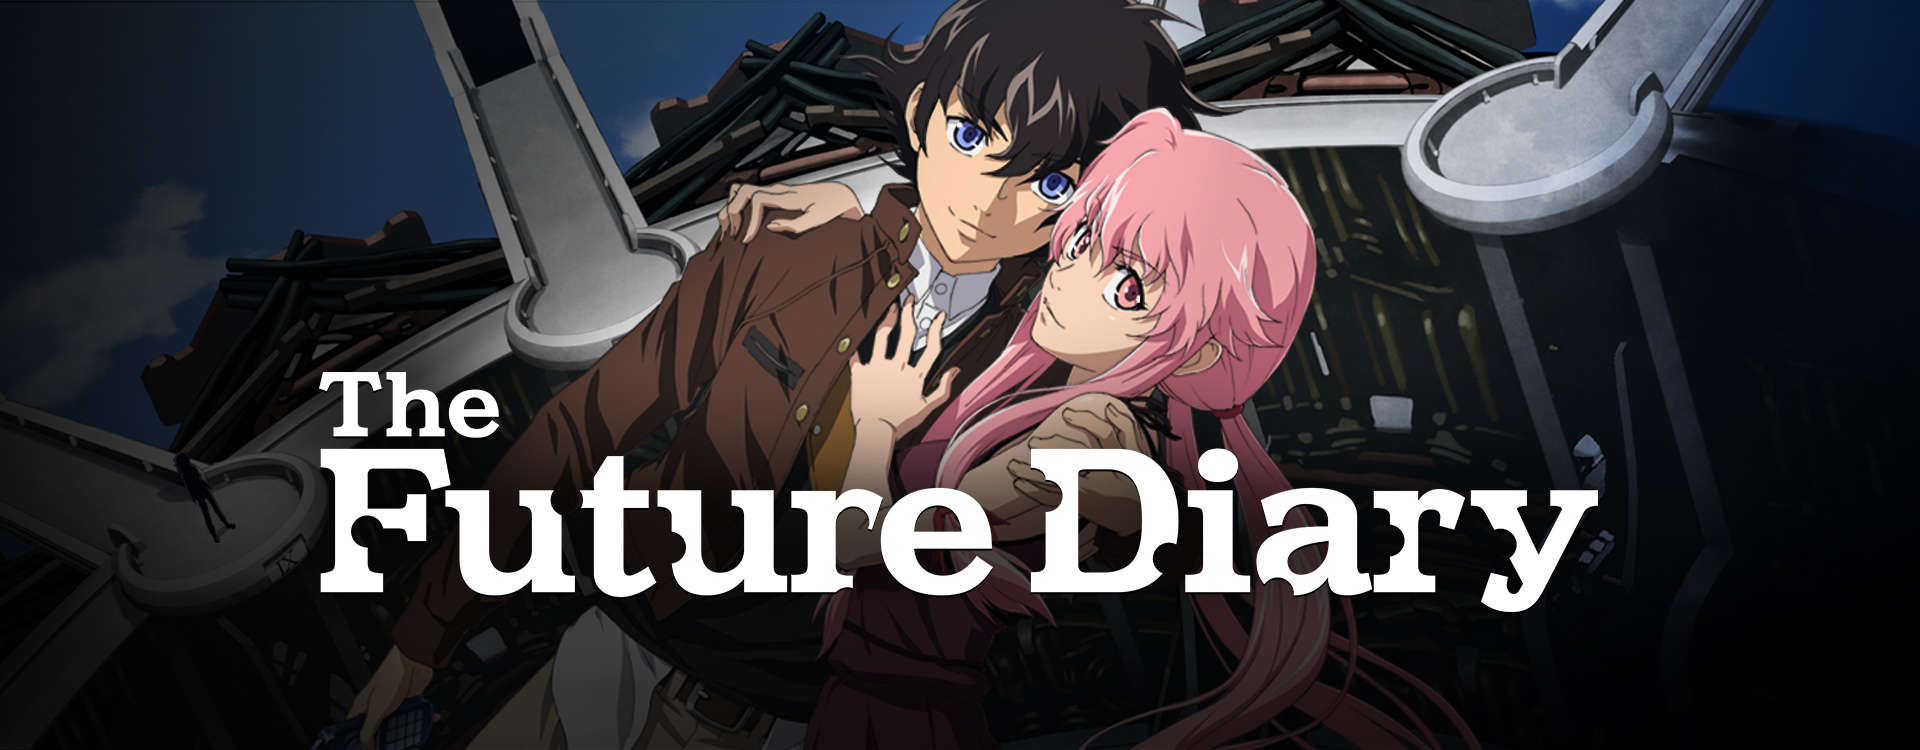 The Future Diary Episode 23 English Dub - YouTube